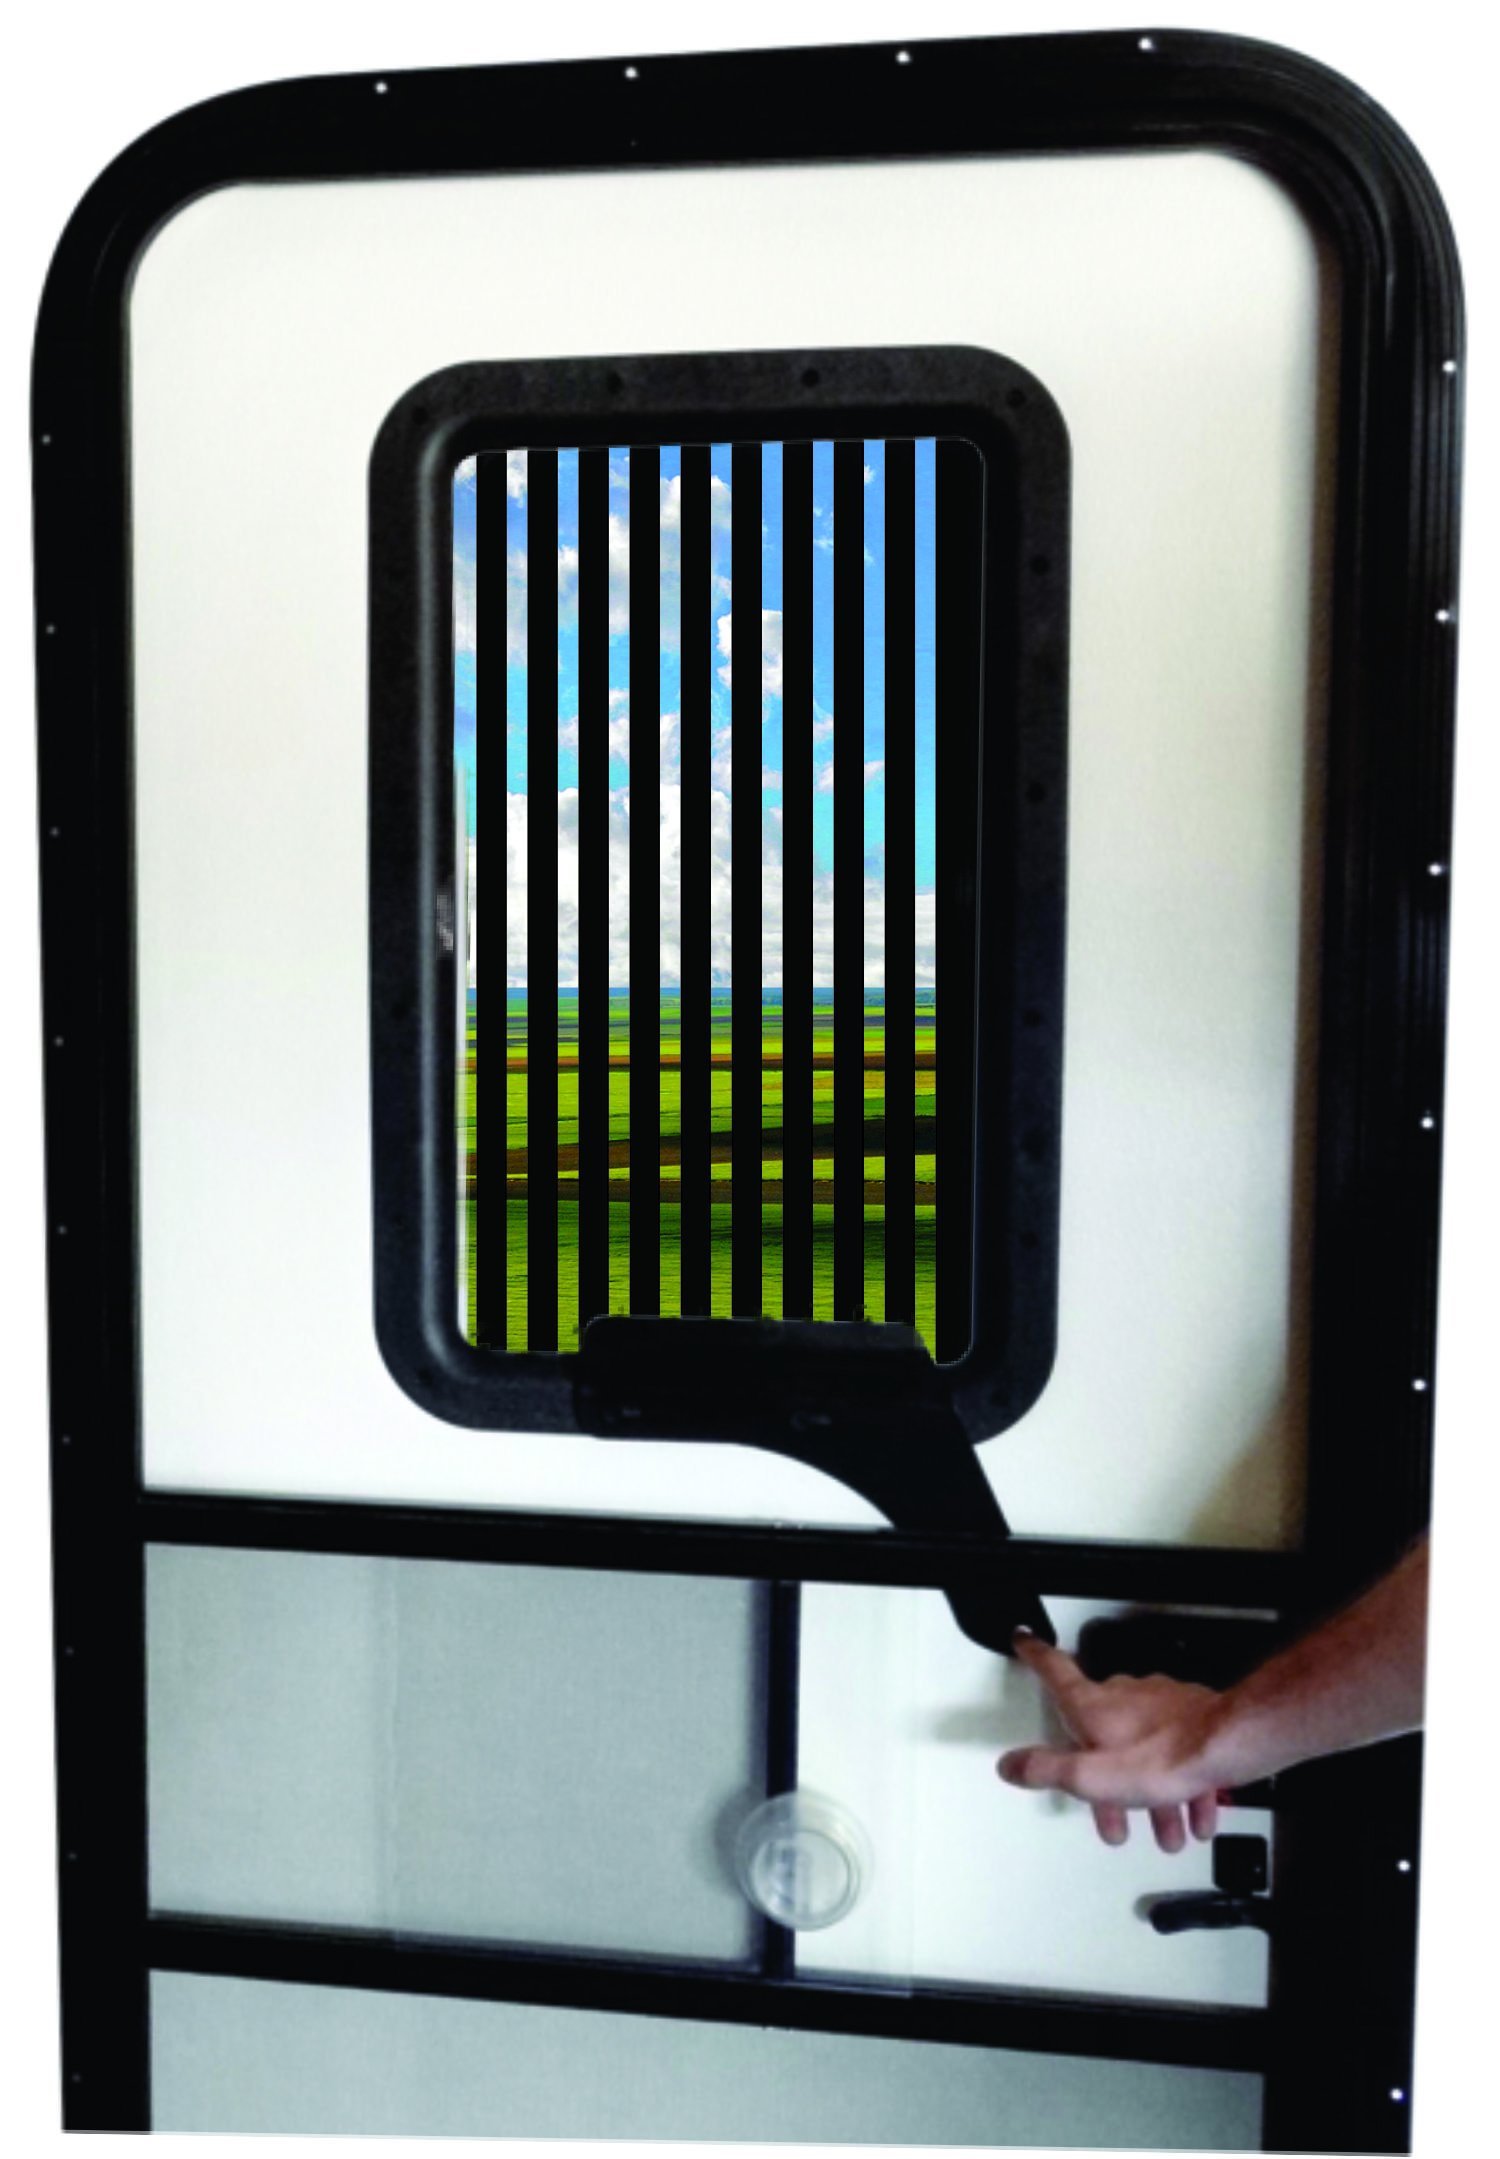 RV Door Window CloZures Shade, Controls Sun Glare, Privacy, and Outside View by Moving fingertip Lever, Without Opening Screen Door. Kit Includes Tinted Glass to Replace Frosted Glass. (Black)